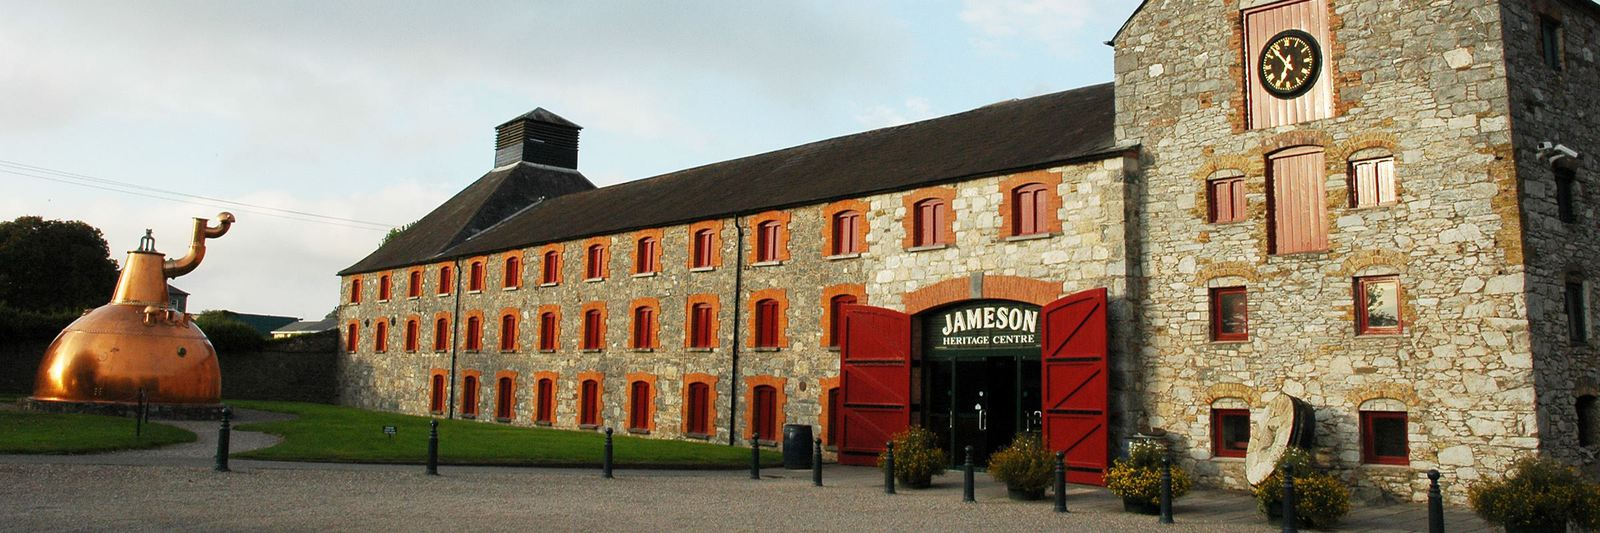 Jameson Distillery